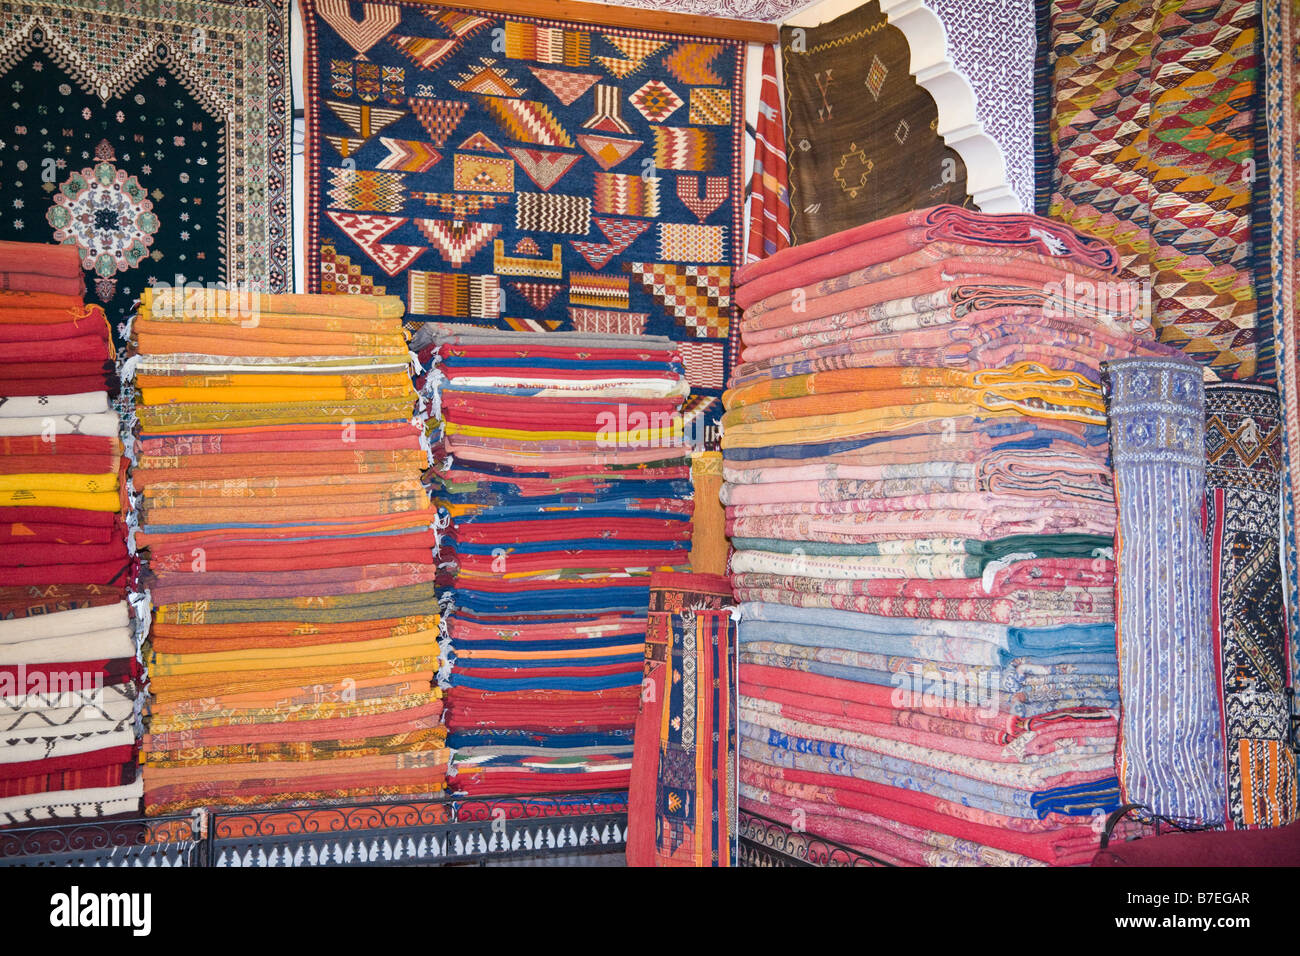 Berber Teppiche Marrakesch Marrakech Morocco Souvenirs Display Stockfotos And Marrakech